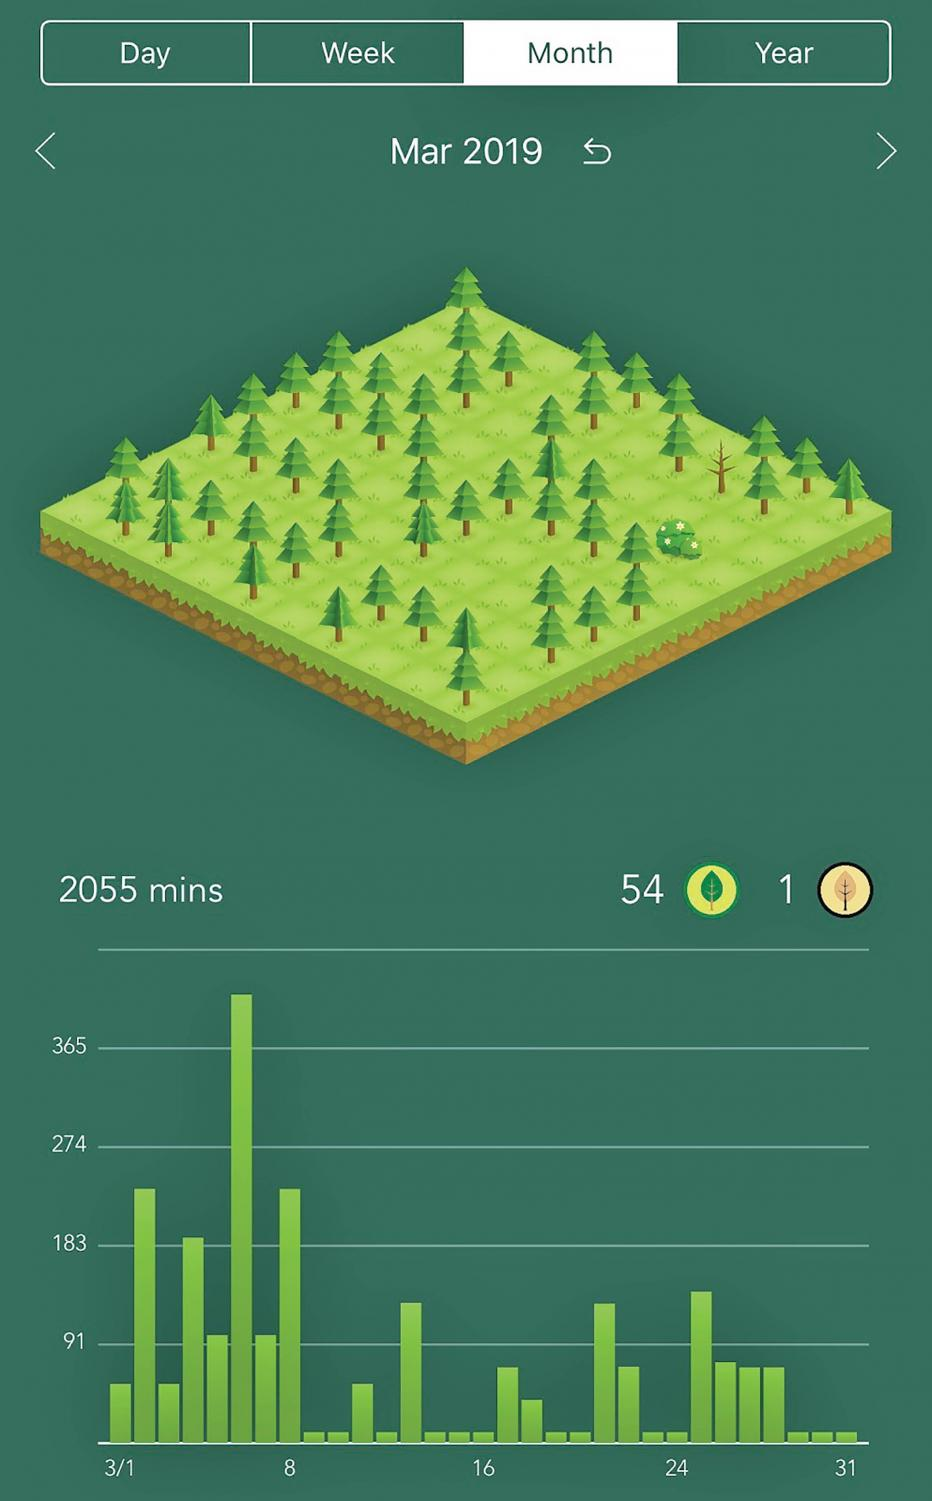 The longer users stay off their phones, the bigger their forest grows. Seekrtech Co. also has an app that helps users build better sleep patterns.